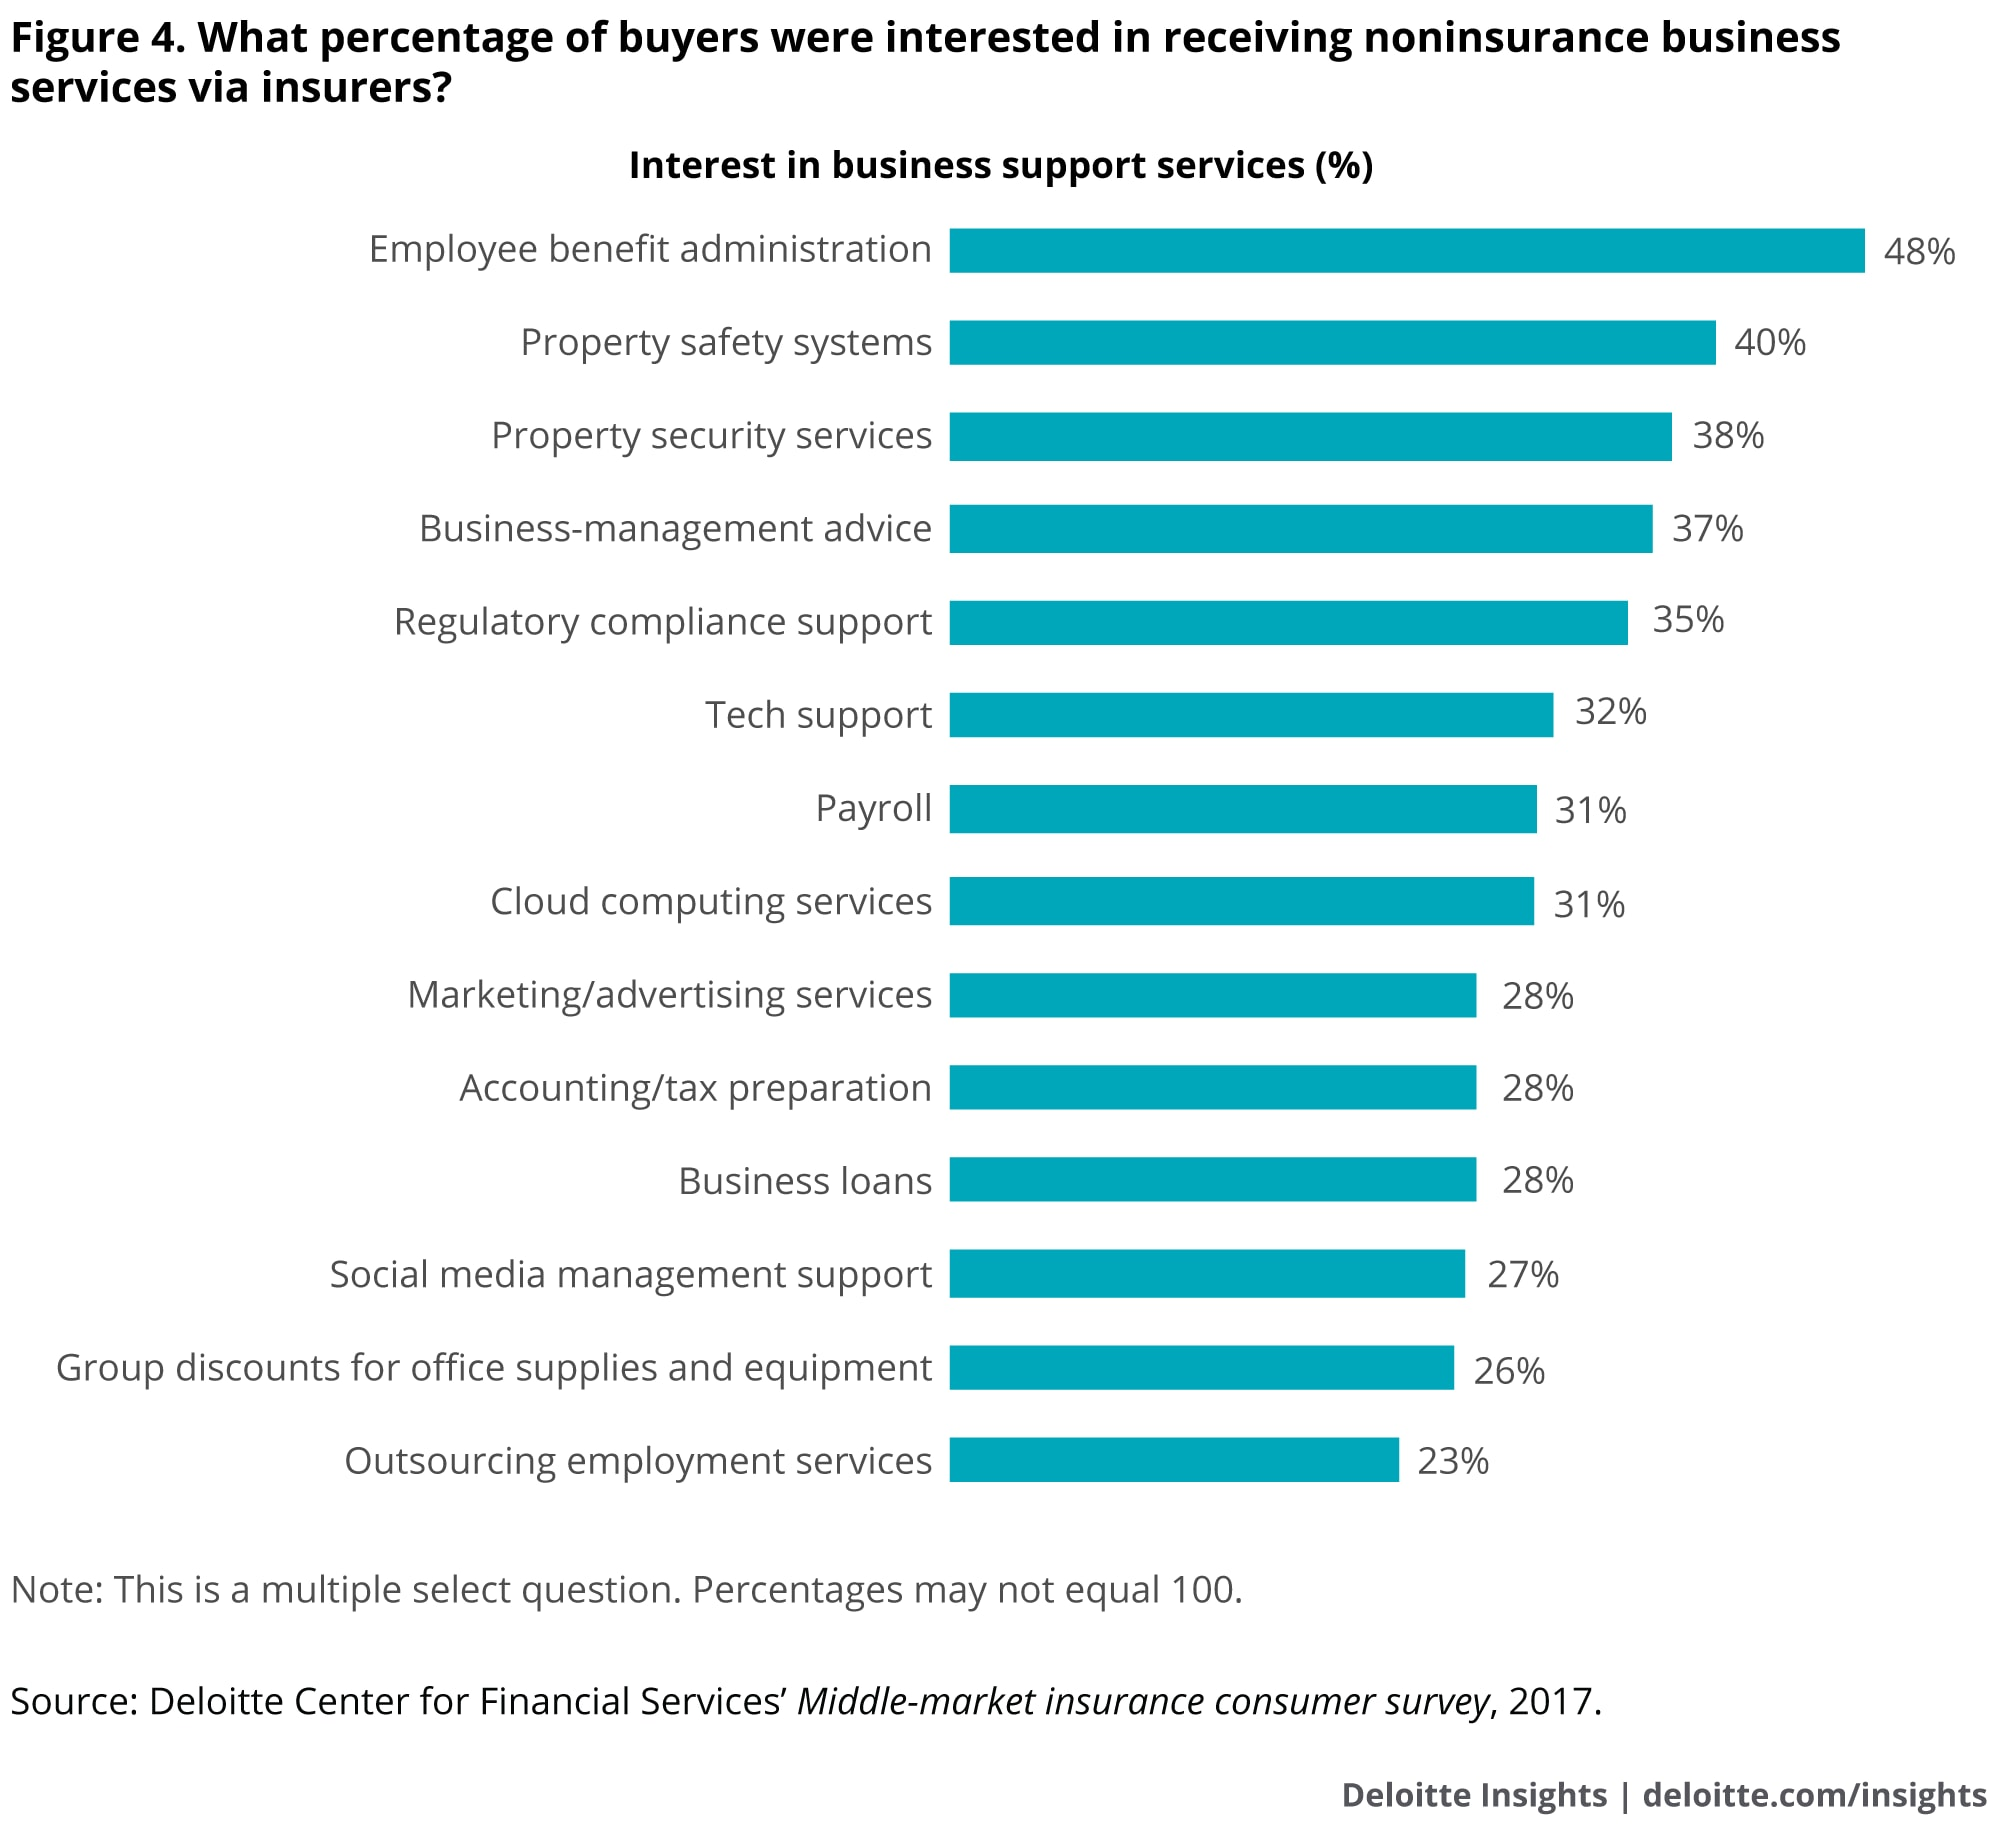 What percentage of buyers were interested in receiving noninsurance business services via insurers?